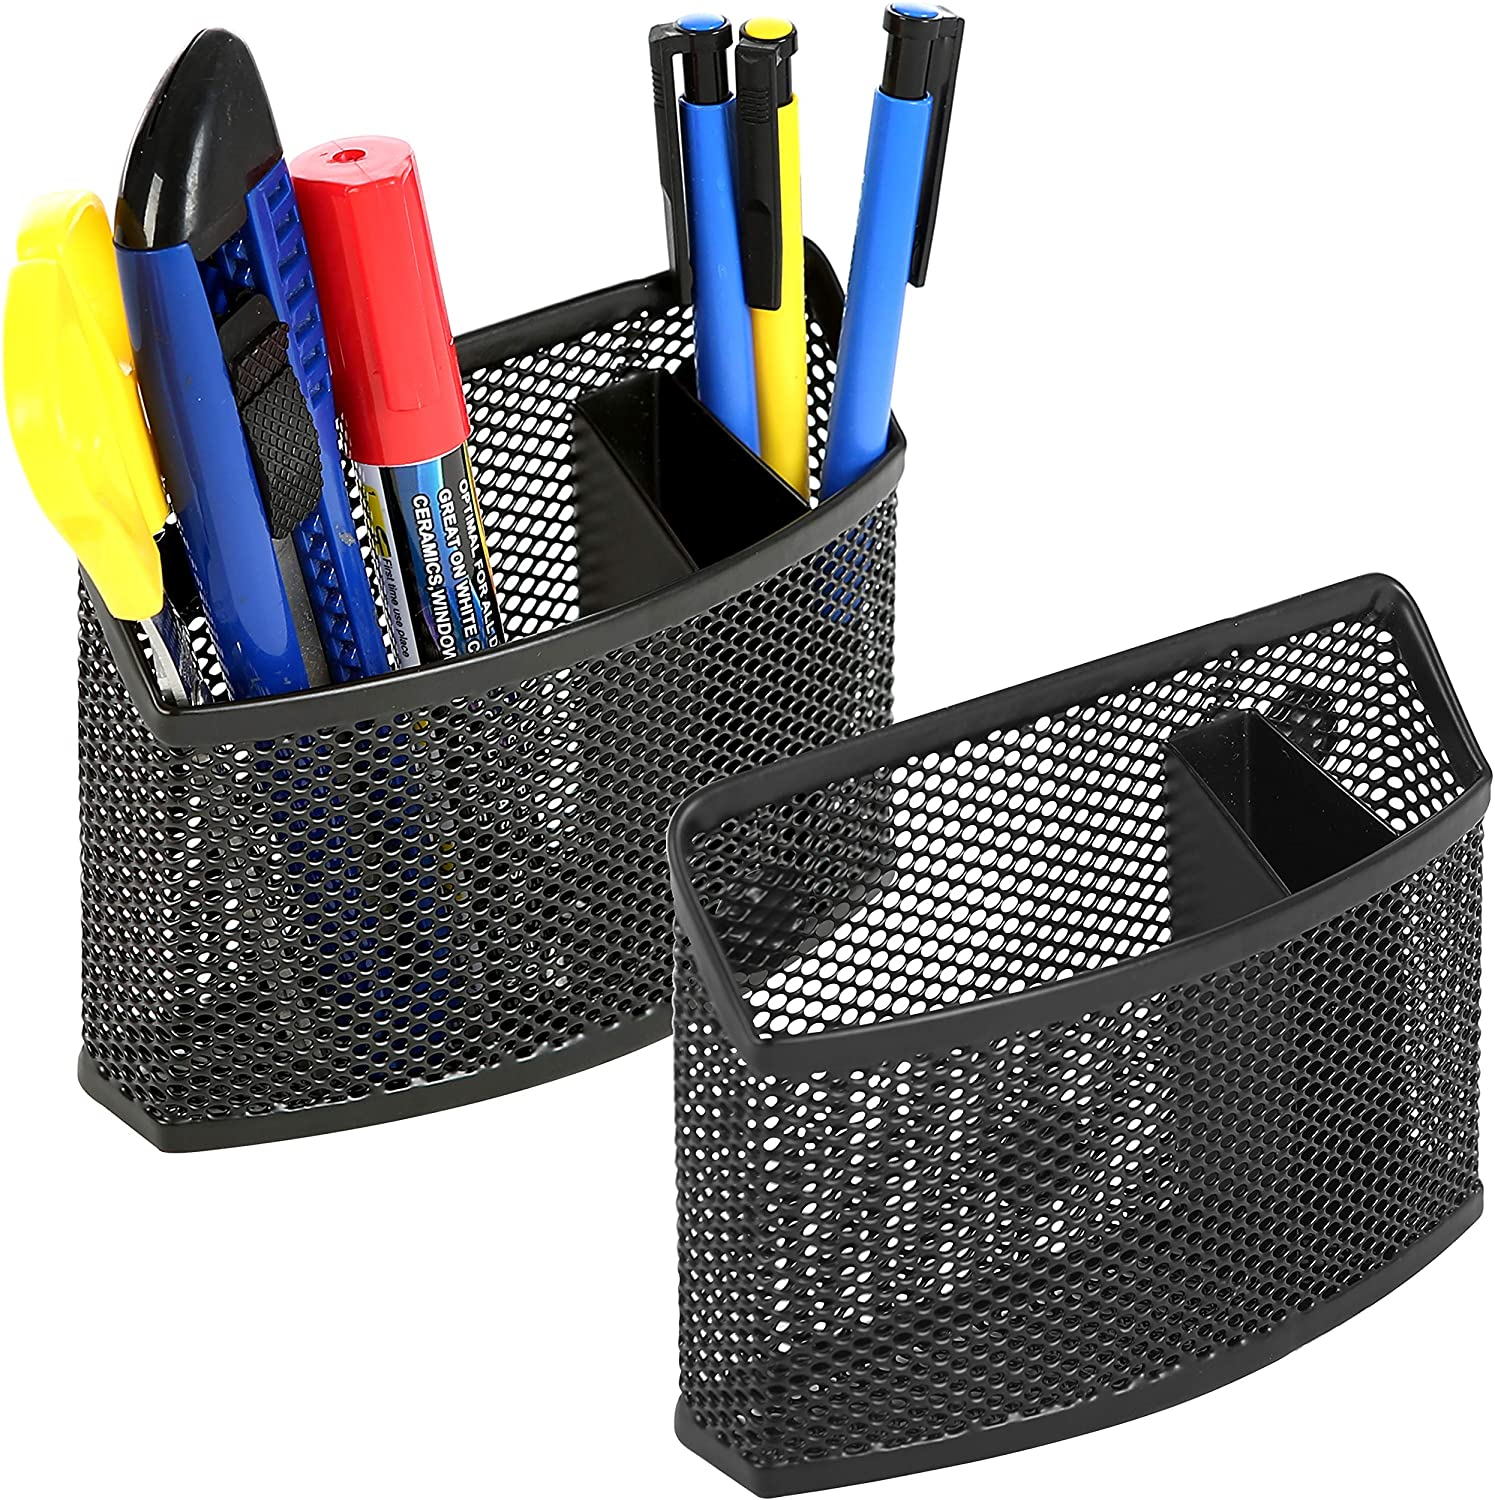 MyGift Set of 2 Magnetic Black Metal Mesh Office Supply Stationary Organizer Bin/Pen Pencil Holder with 3 Compartments